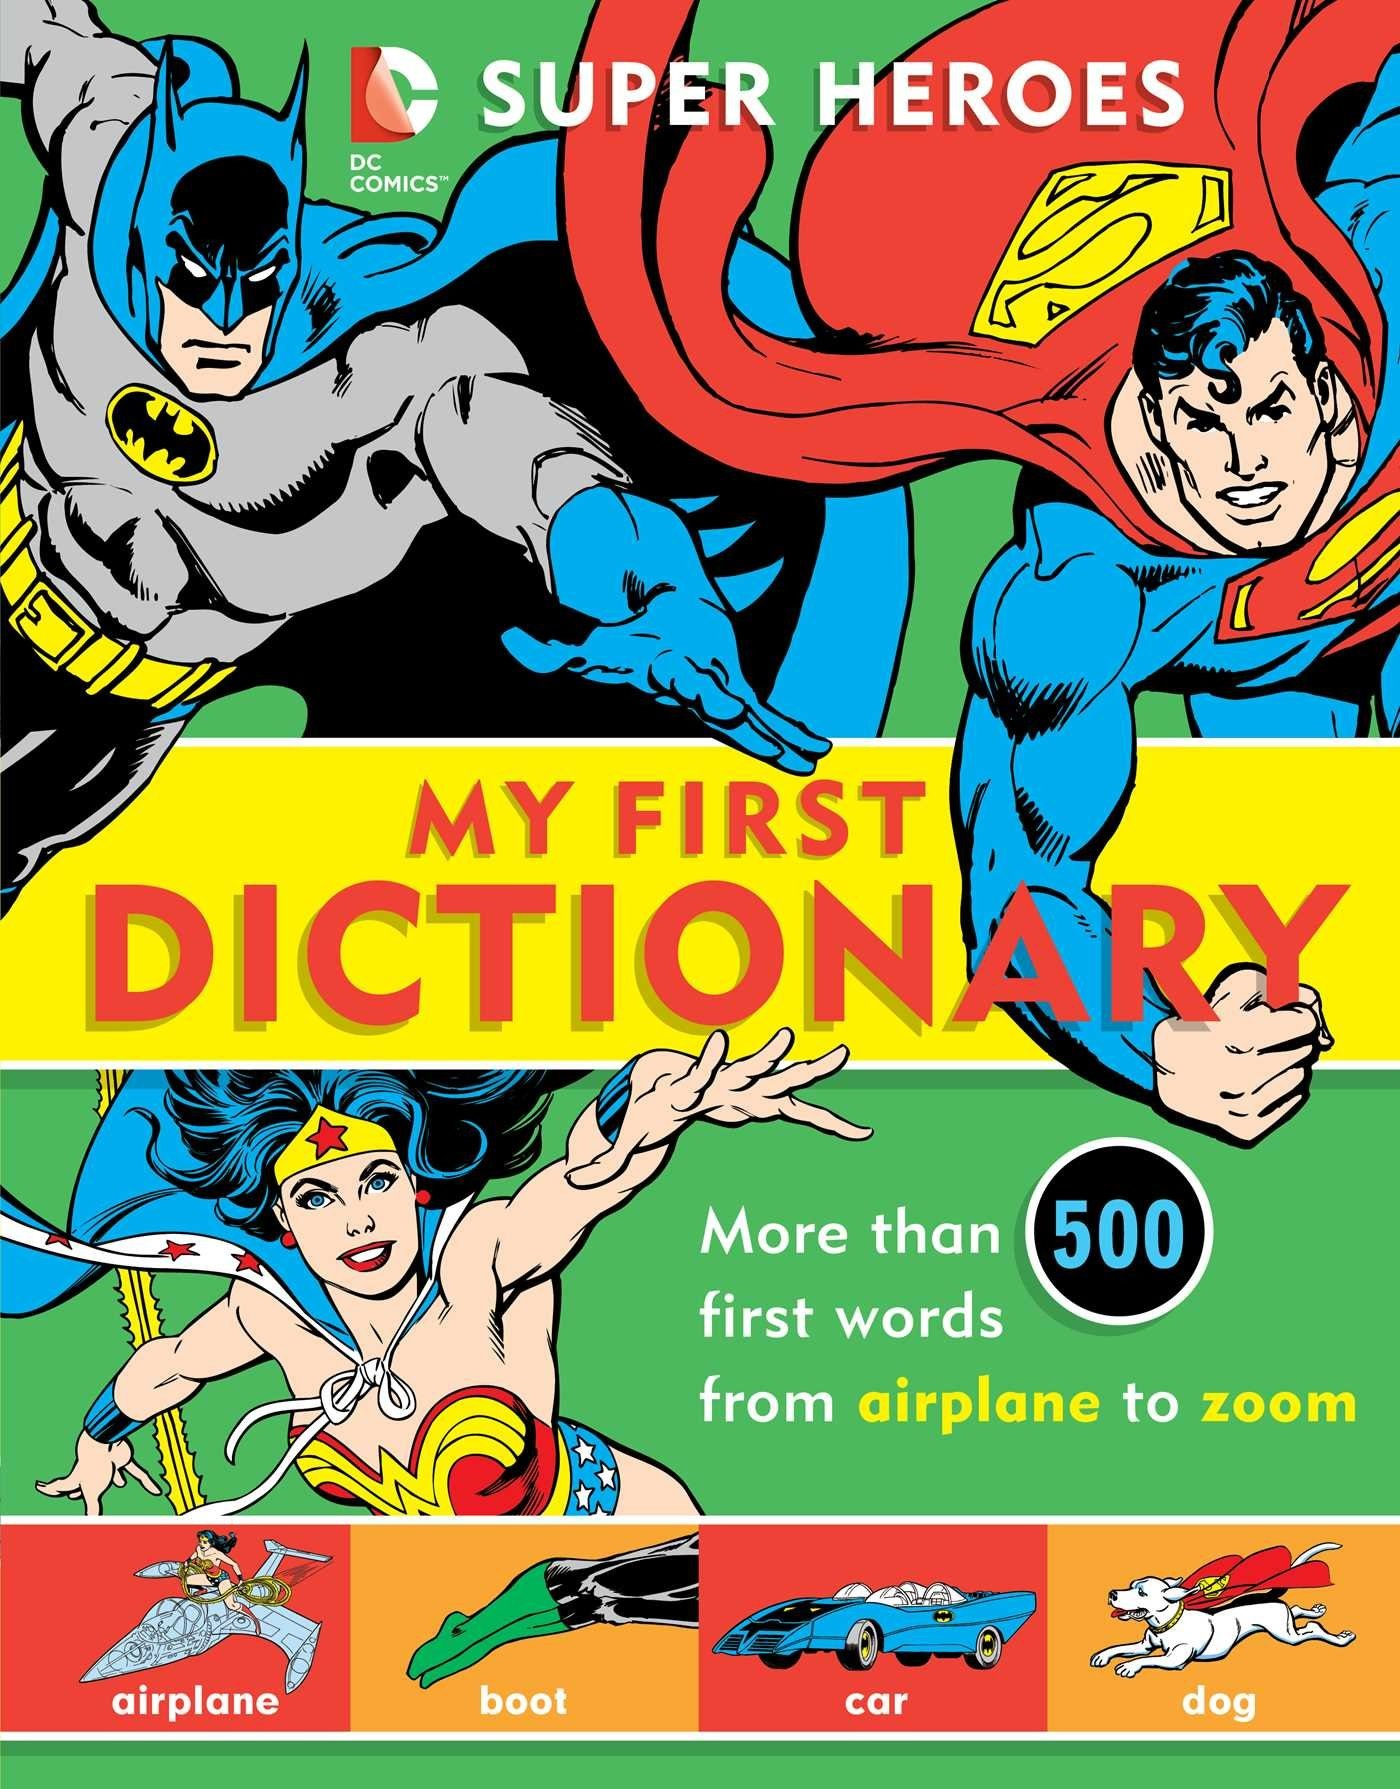 DC Super Heroes - My First Dictionary   SuperFriends Wiki